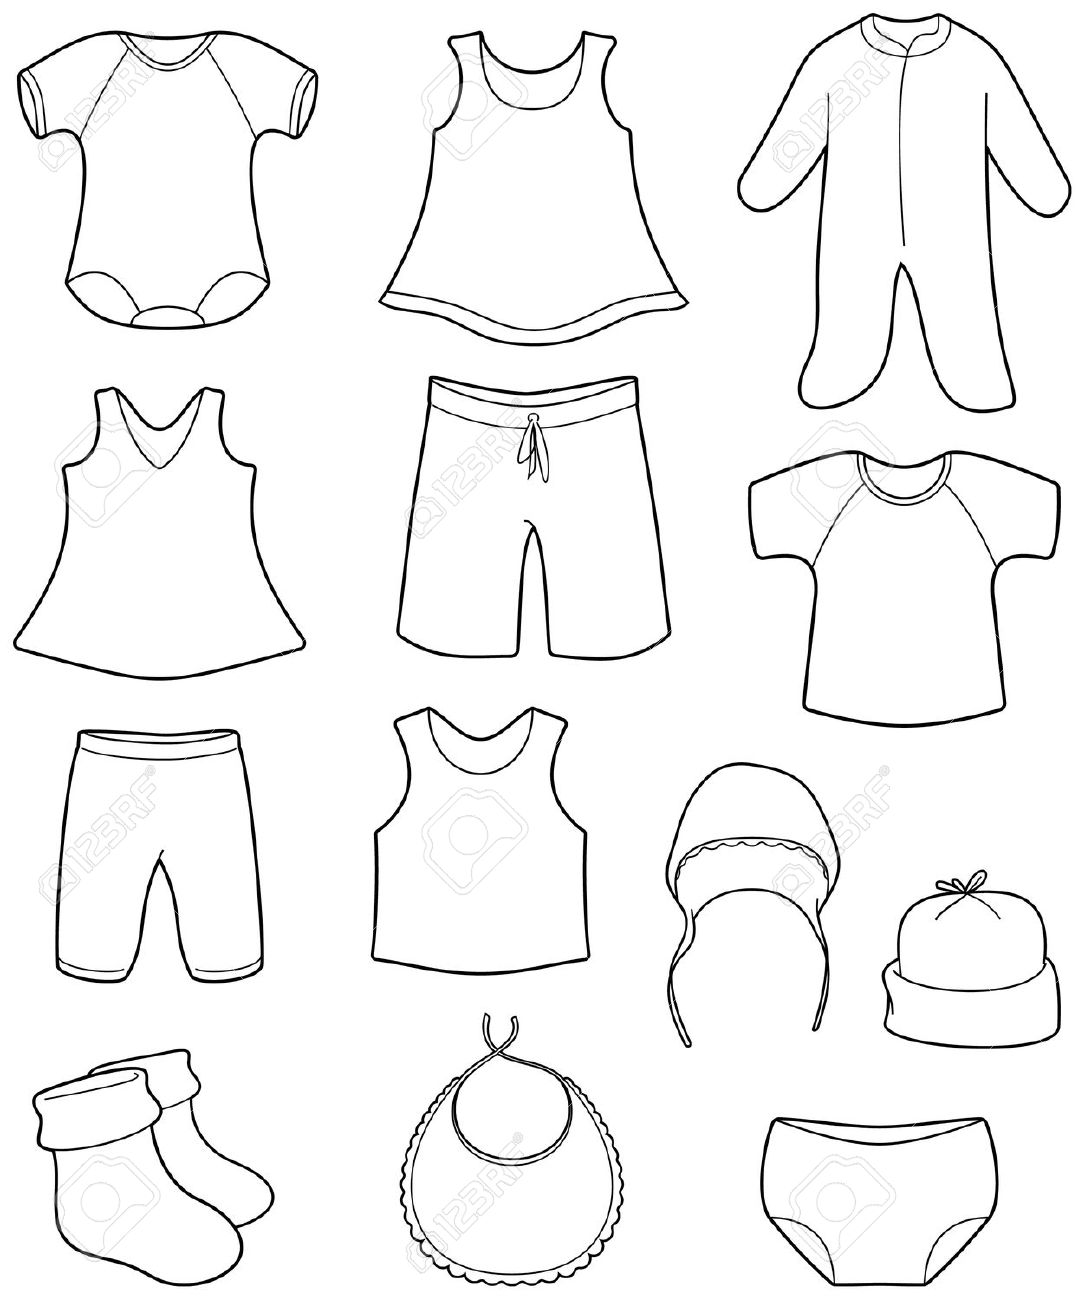 children 39 s clothing clipart 20 free cliparts download images on clipground 2019. Black Bedroom Furniture Sets. Home Design Ideas